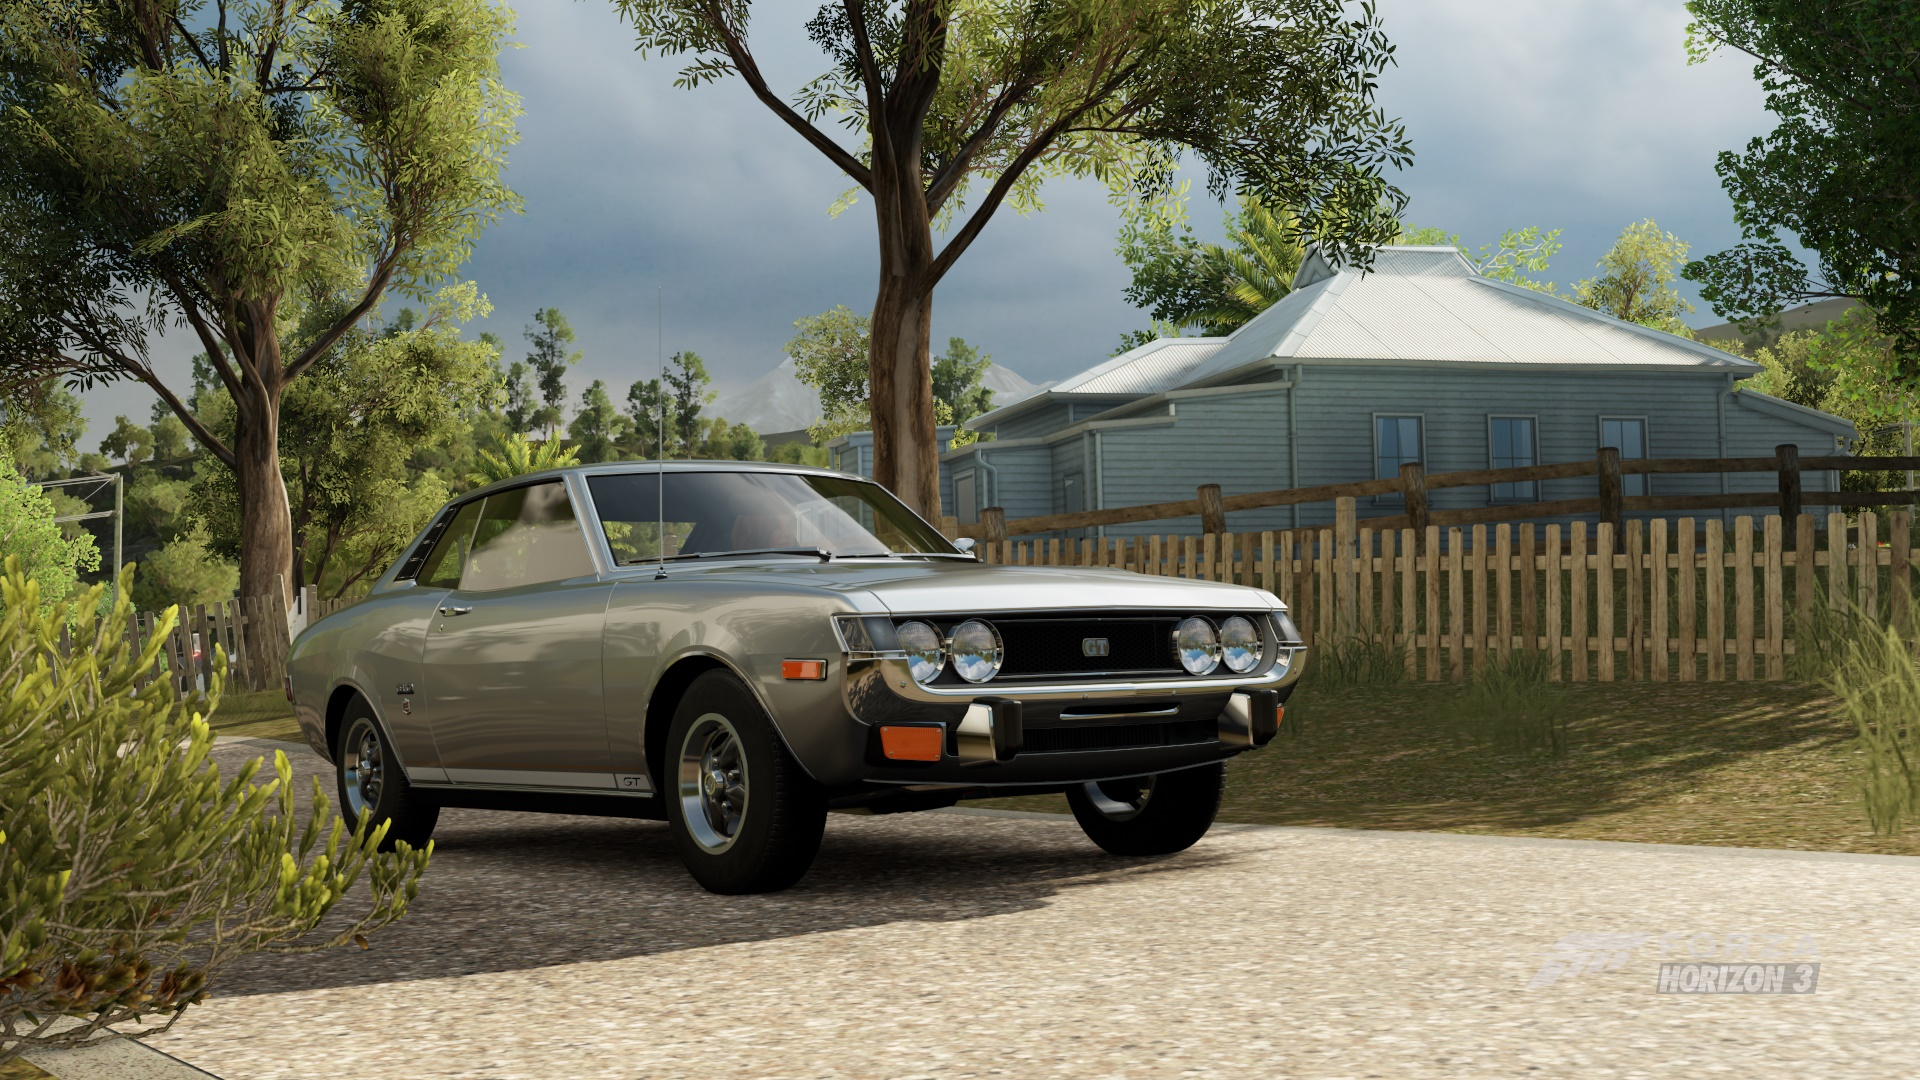 hight resolution of 1974 toyota celica gt photo by mdspeedster